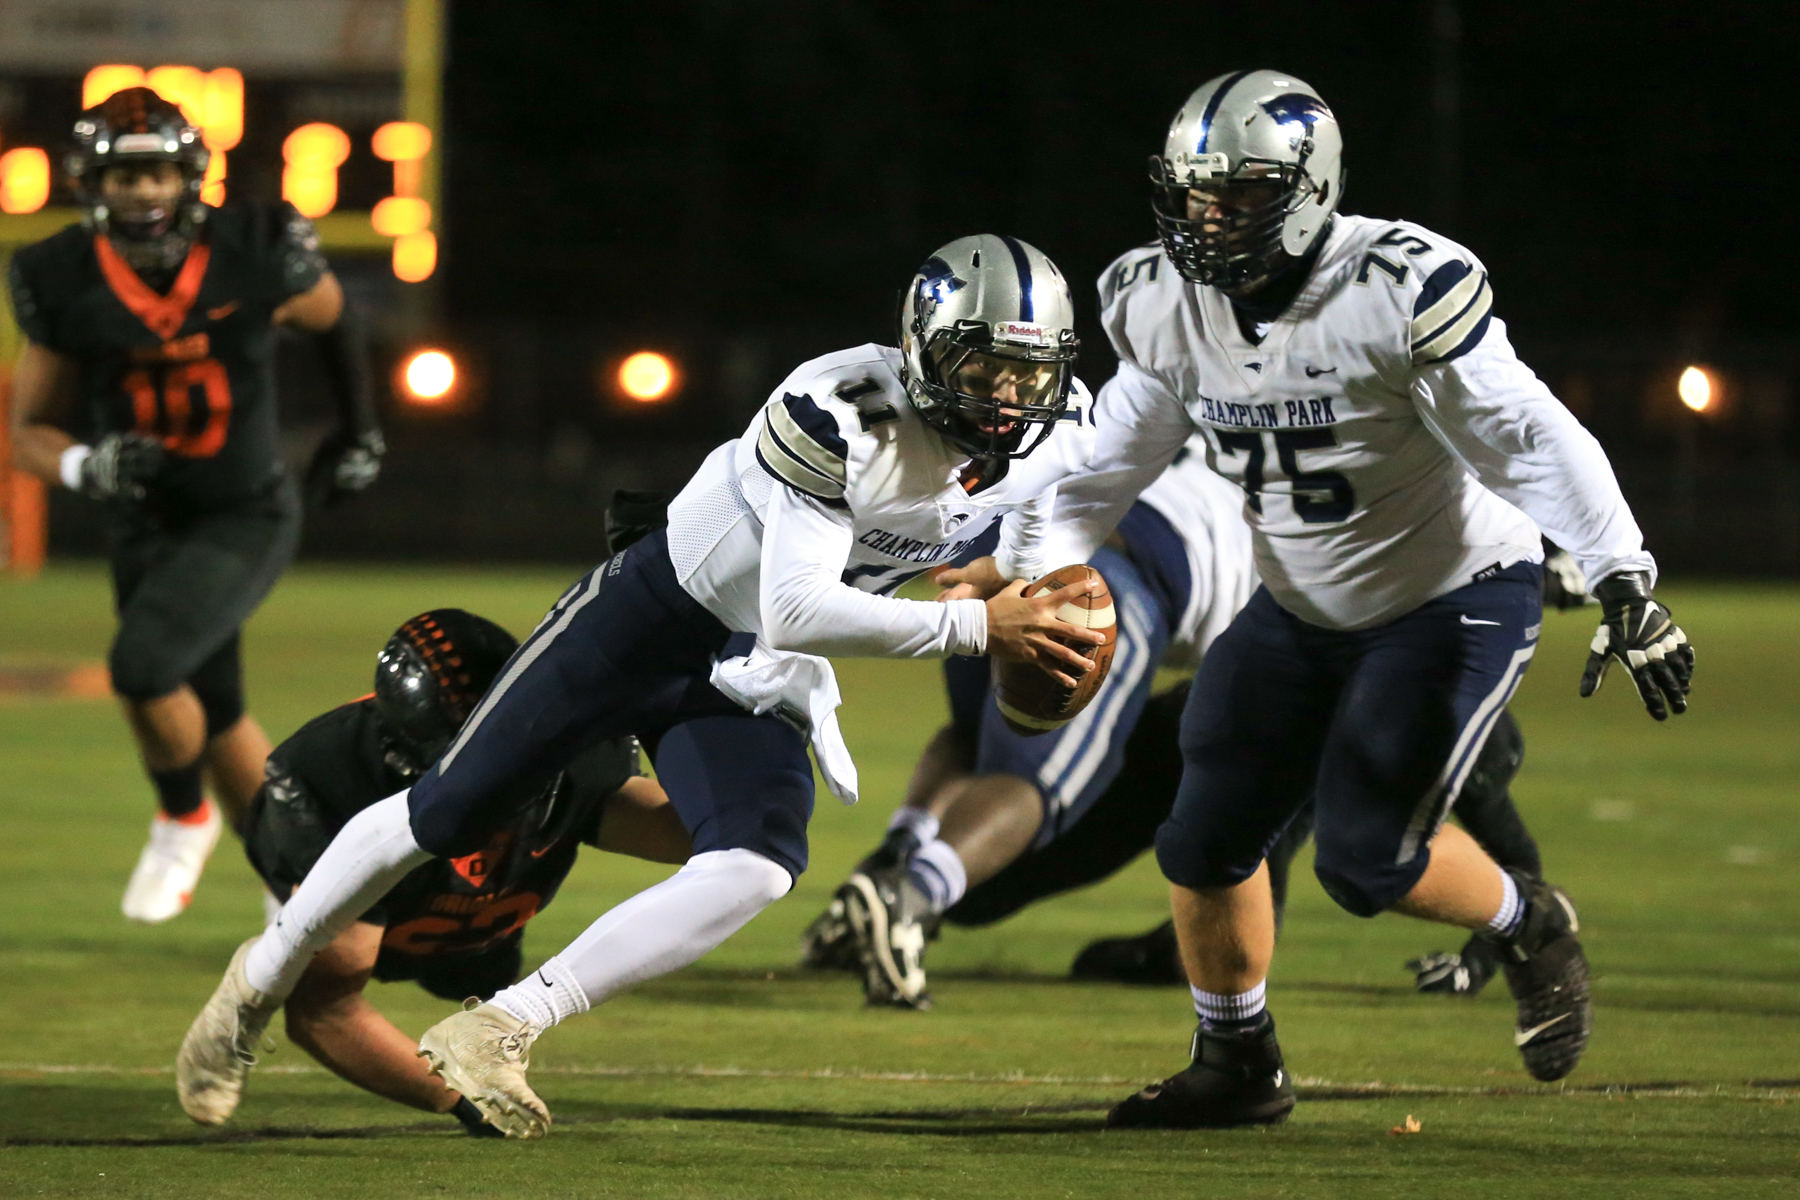 Champlin Park quarterback Cade Fitzgerald scrambles for positive yardage against Osseo Thursday night. The Rebels defeated the Orioles 14-7 in Osseo. Photo by Jeff Lawler, SportsEngine